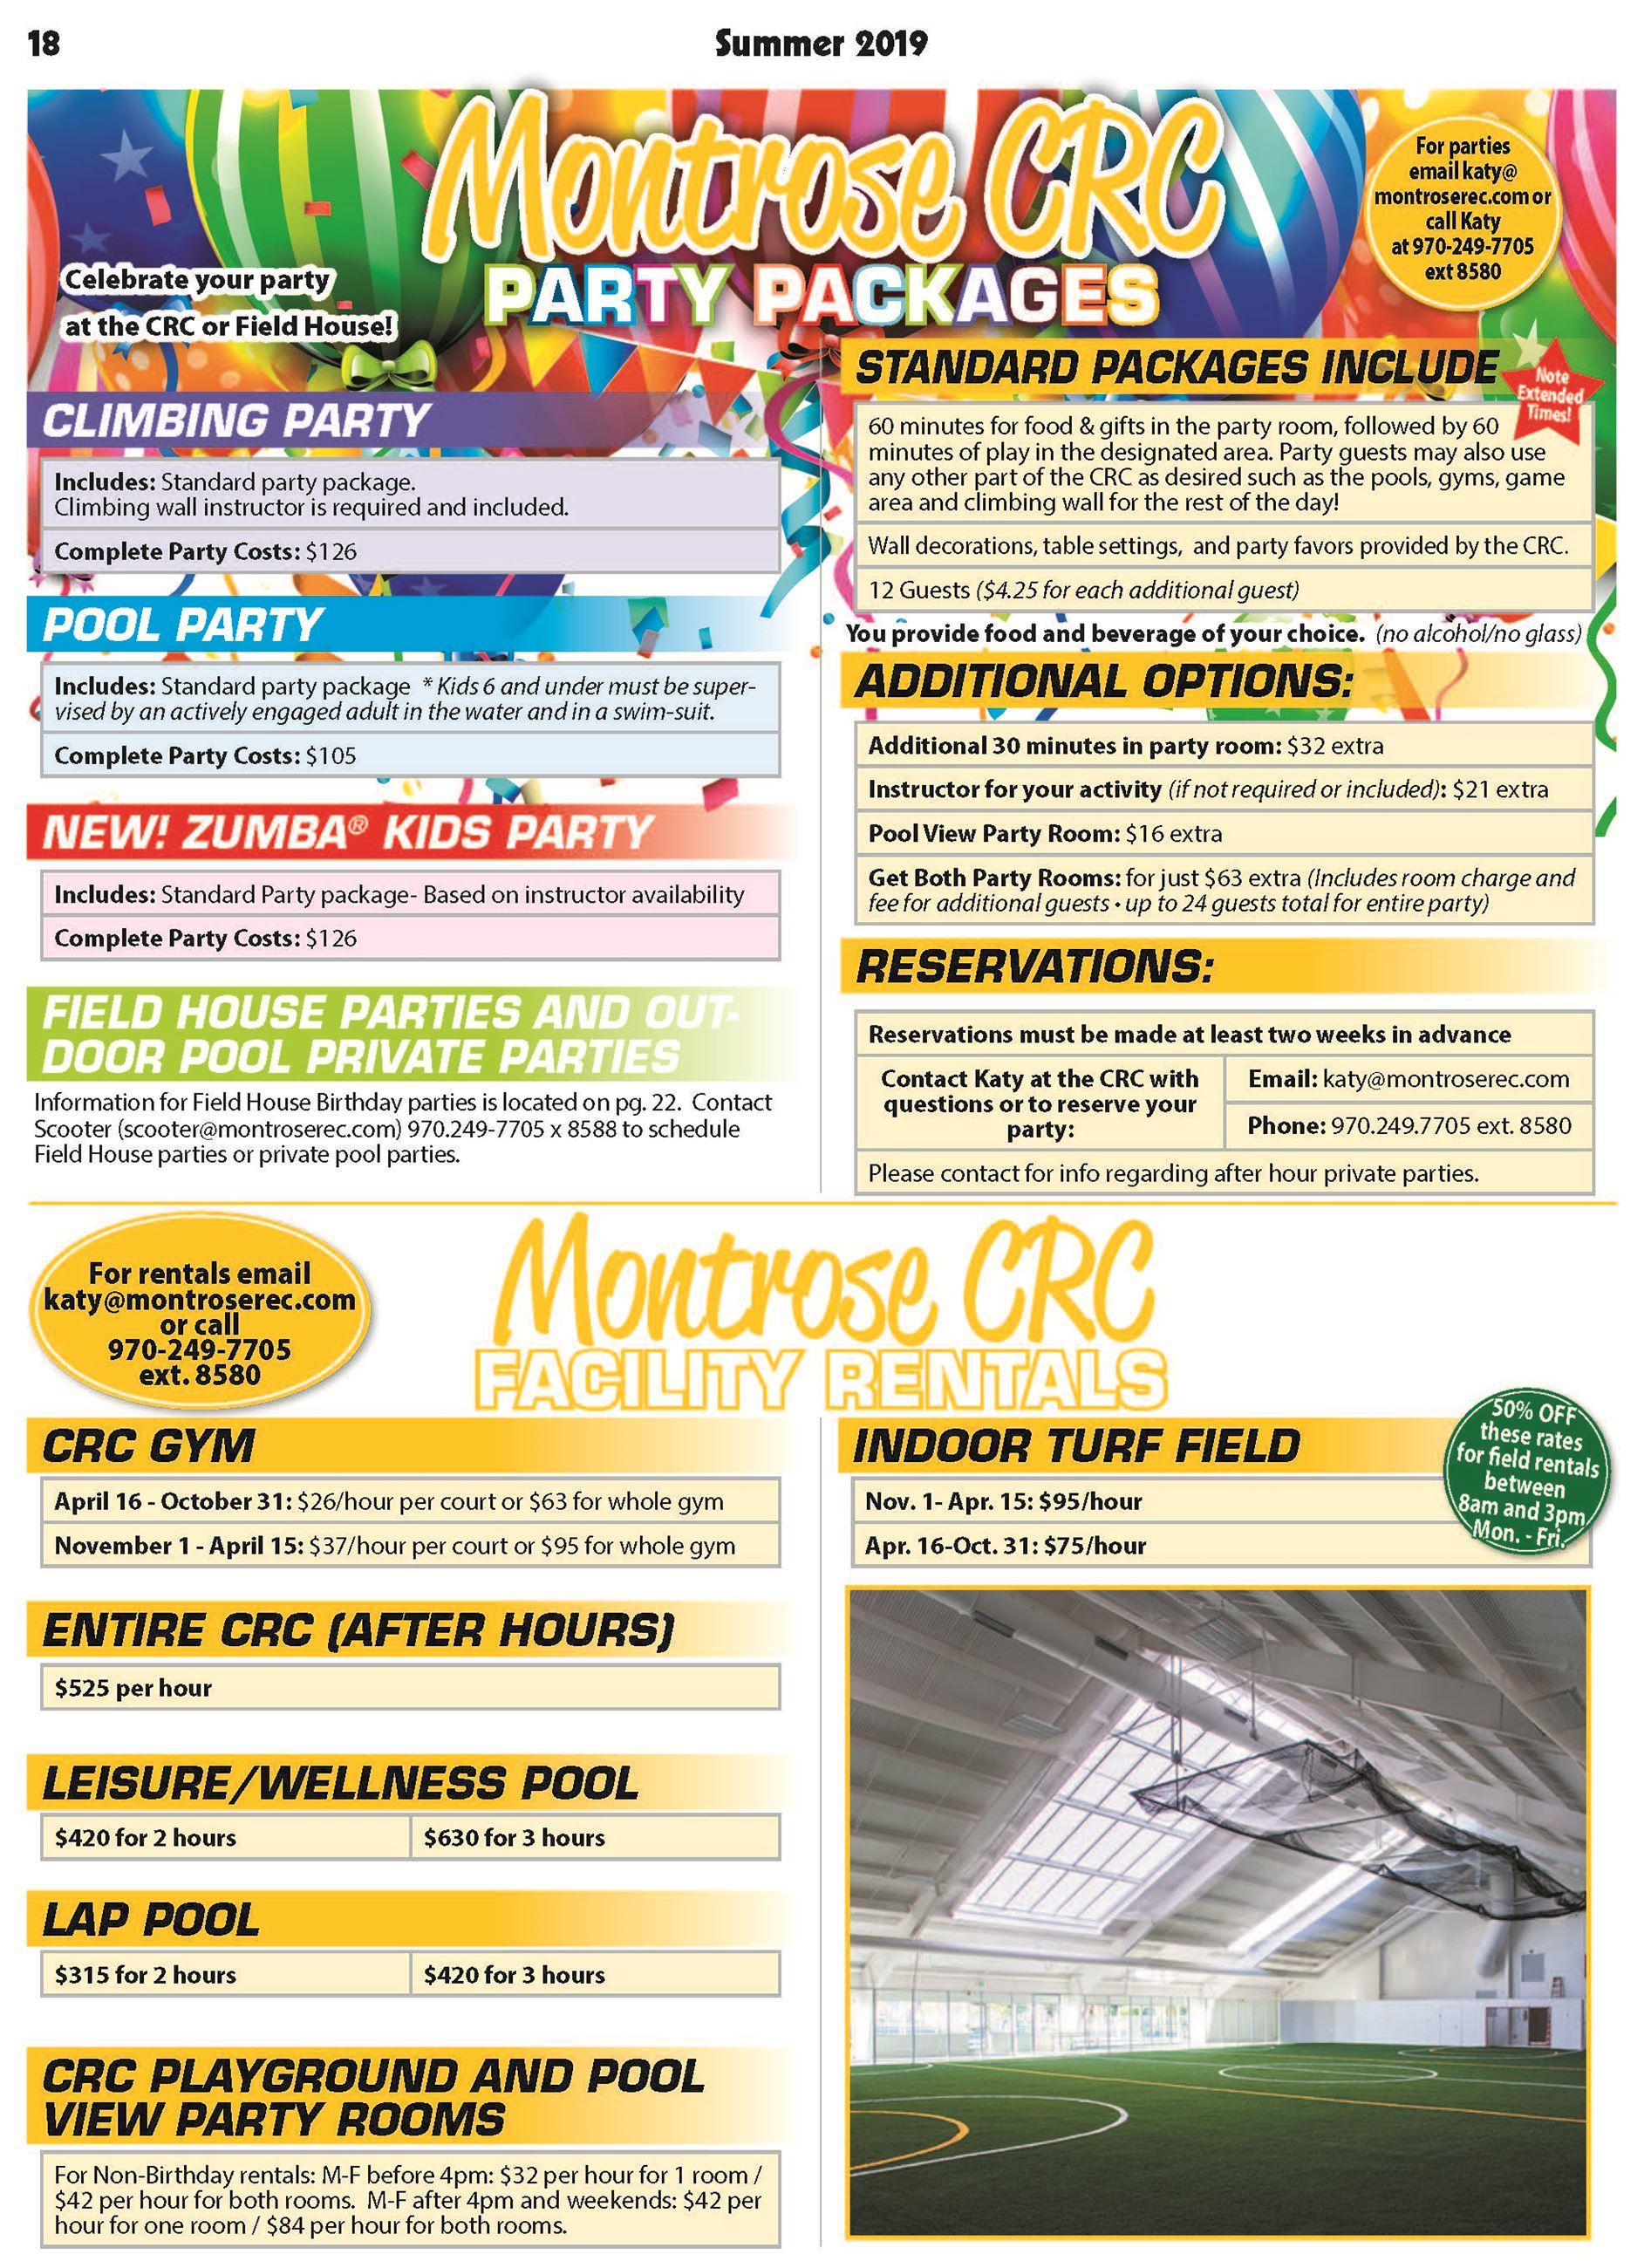 19-MRD-Summer-Guide-COMPLETE_Page_18